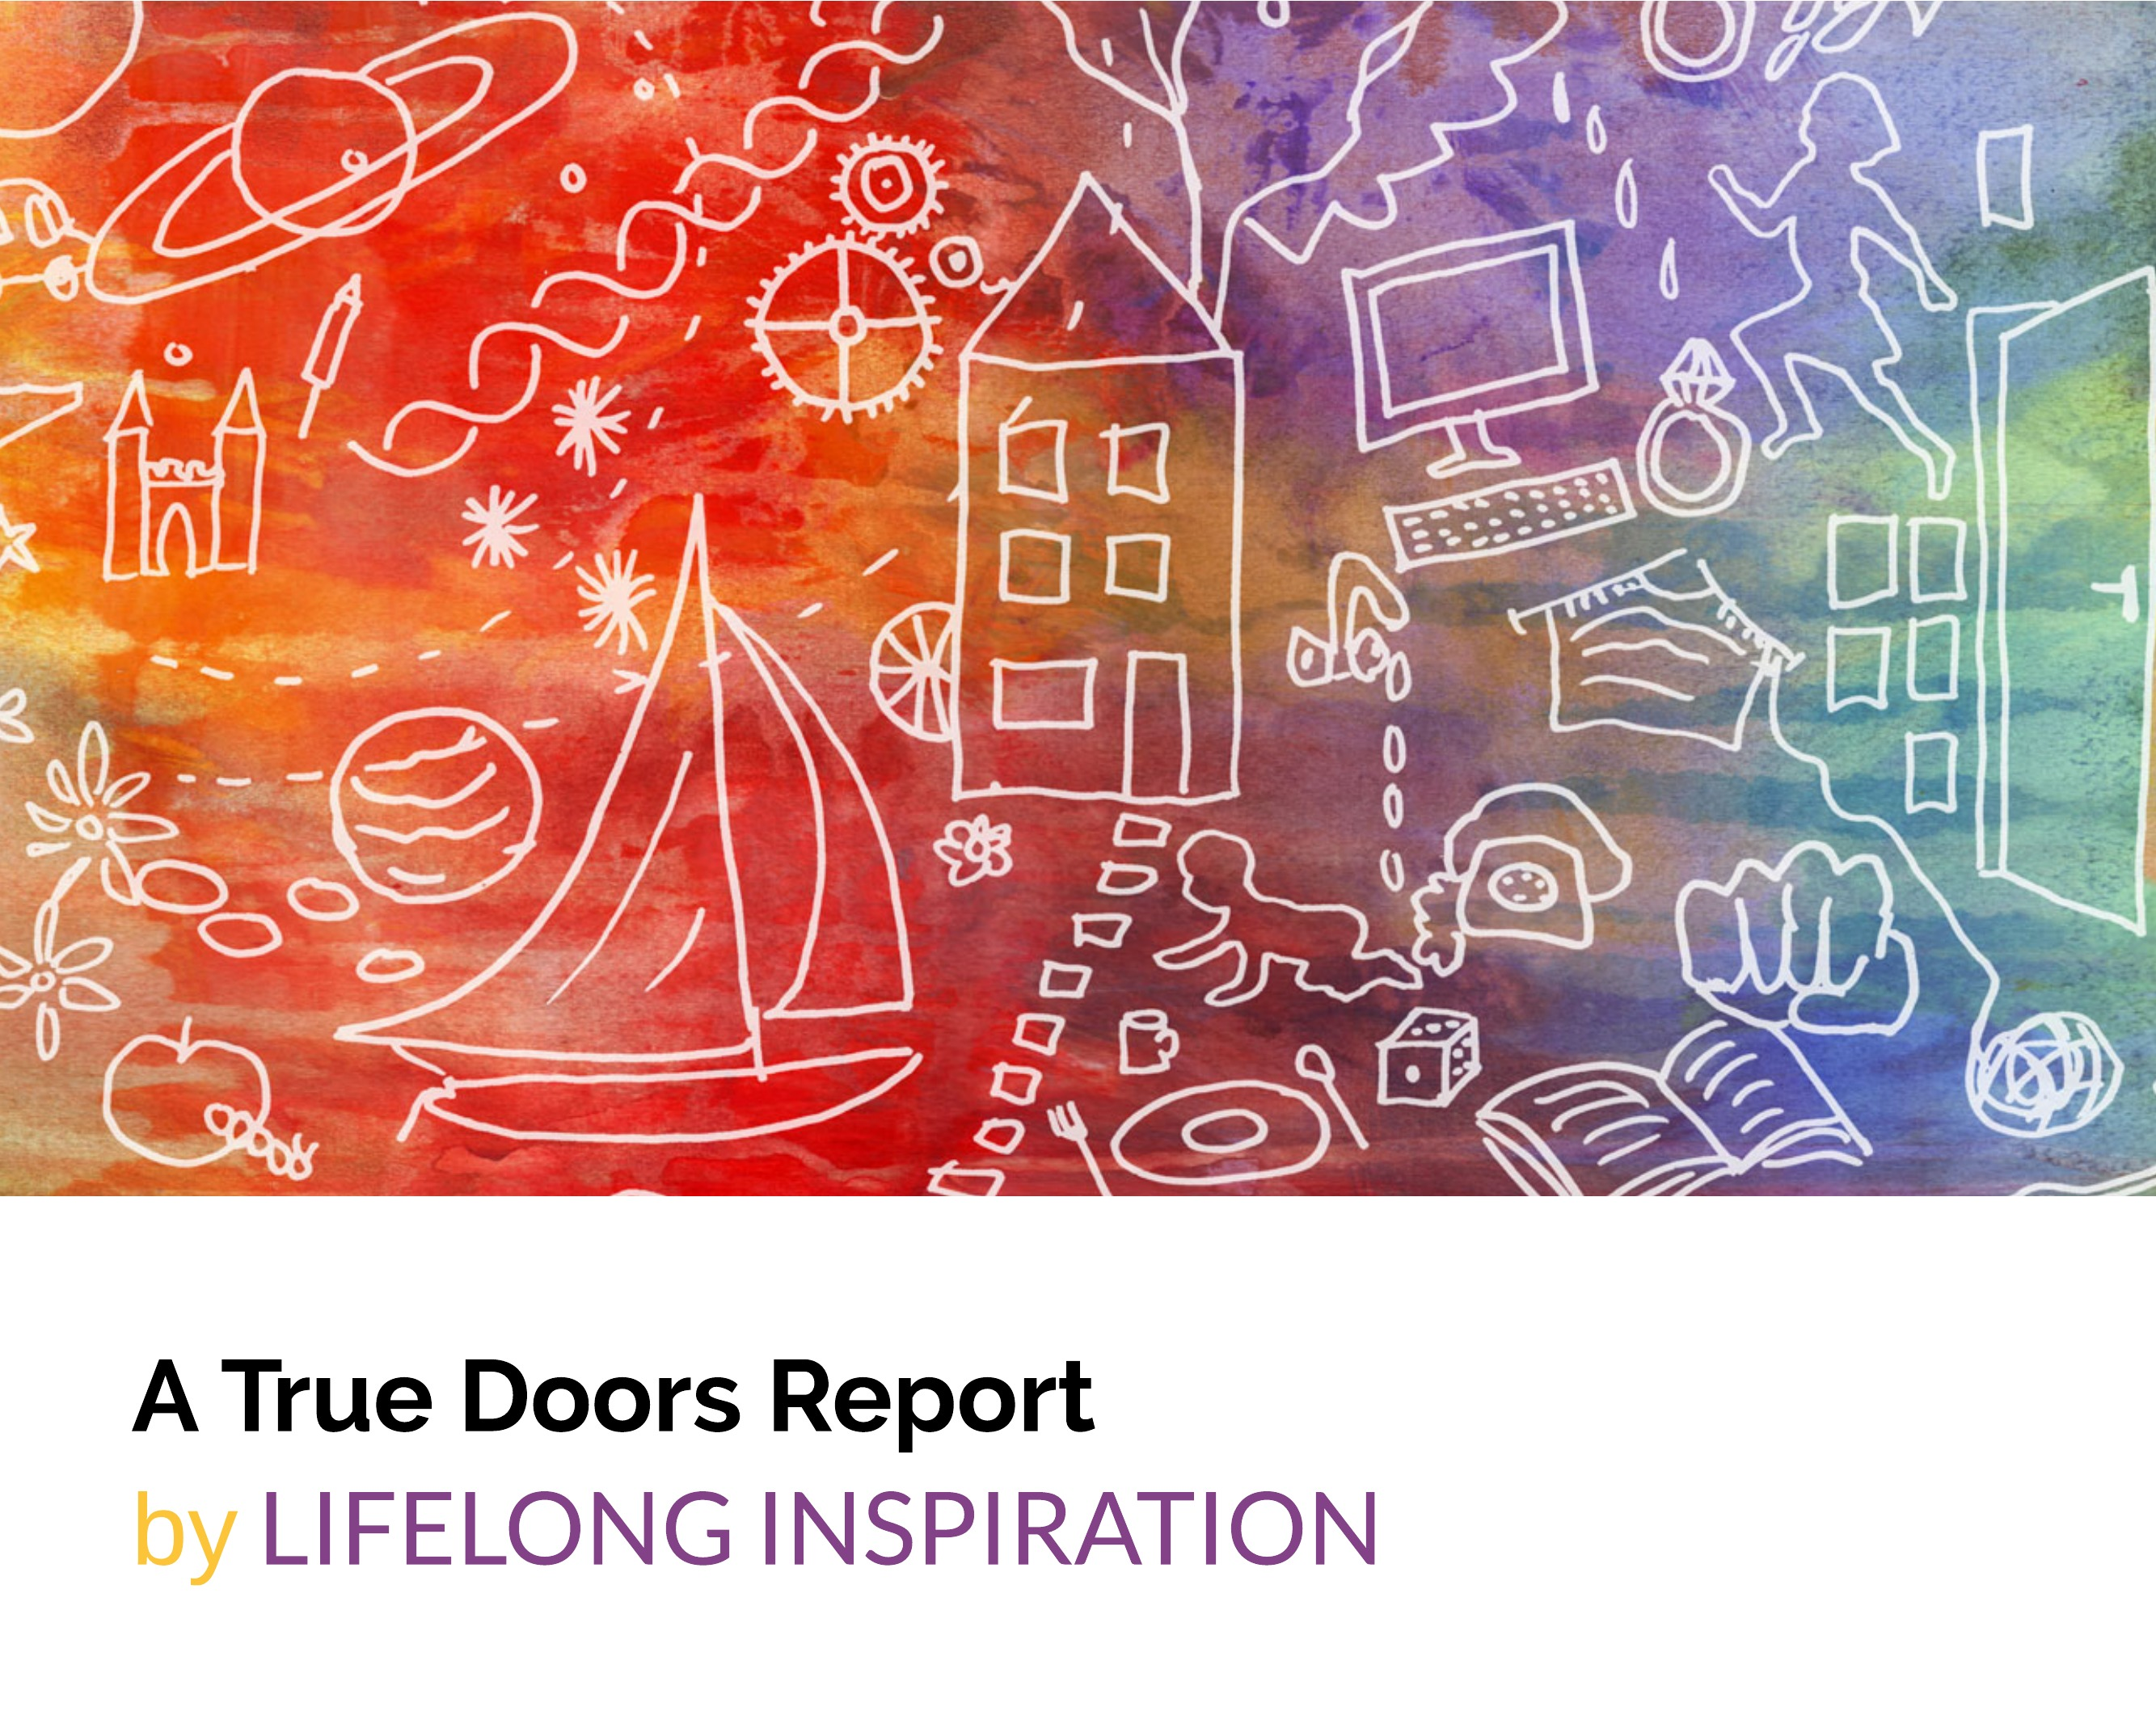 A True Doors Report - By Lifelong Inspiration